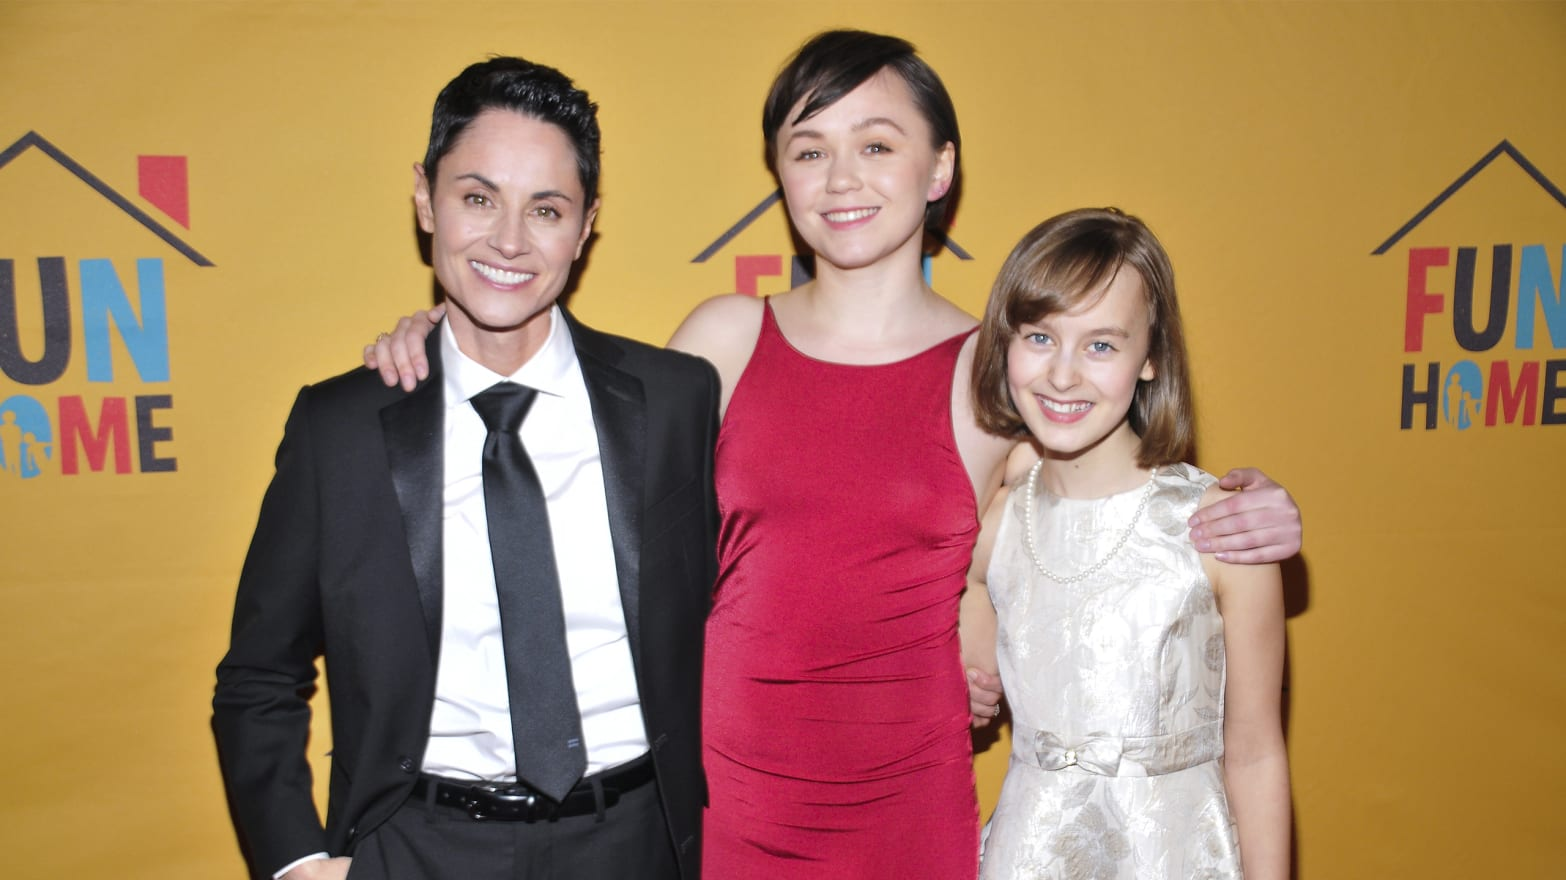 Meet the Alisons: How Three Women Helped 'Fun Home' Conquer